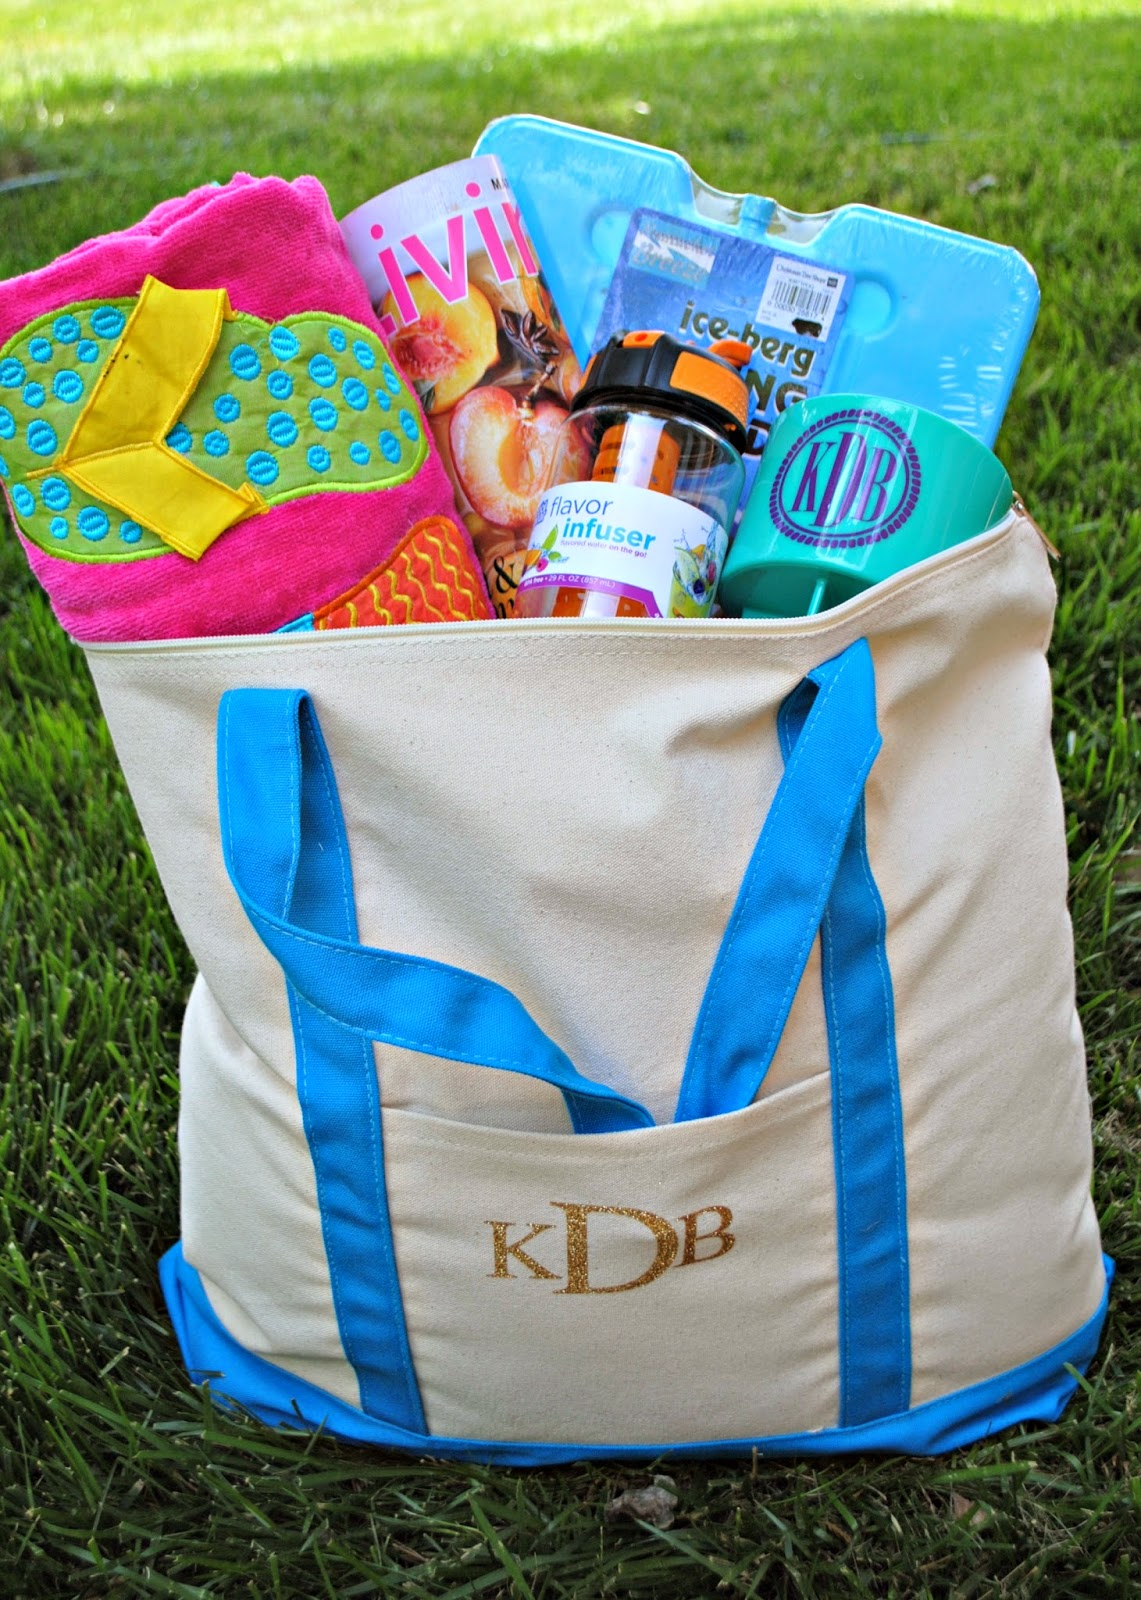 http://silhouetteschool.blogspot.com/2014/07/personalized-tote-gift-bag-gift-idea.html